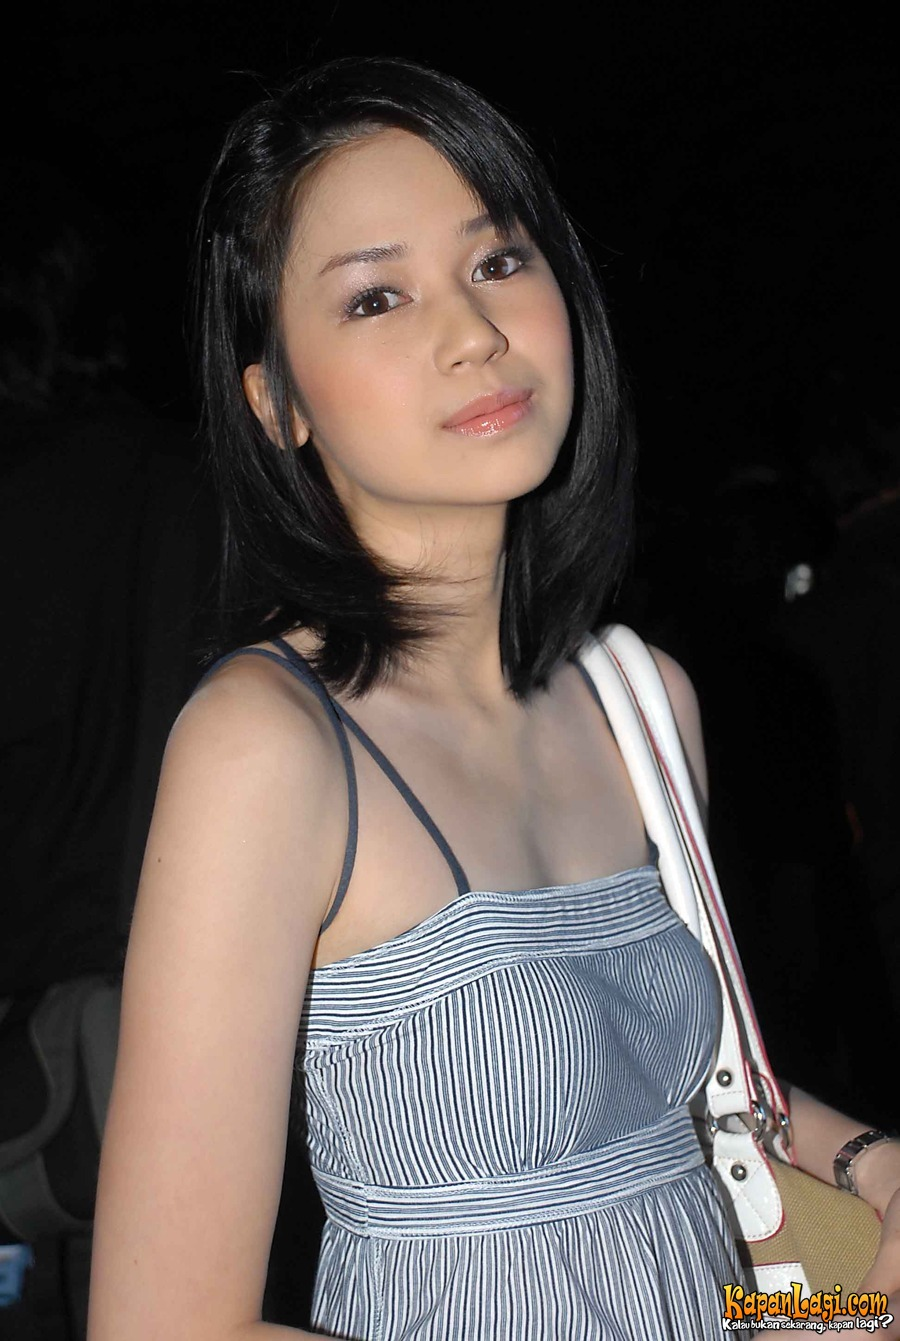 Laura Basuki Presenter and 3 Hati Dua Dunia, Satu Cinta Actress